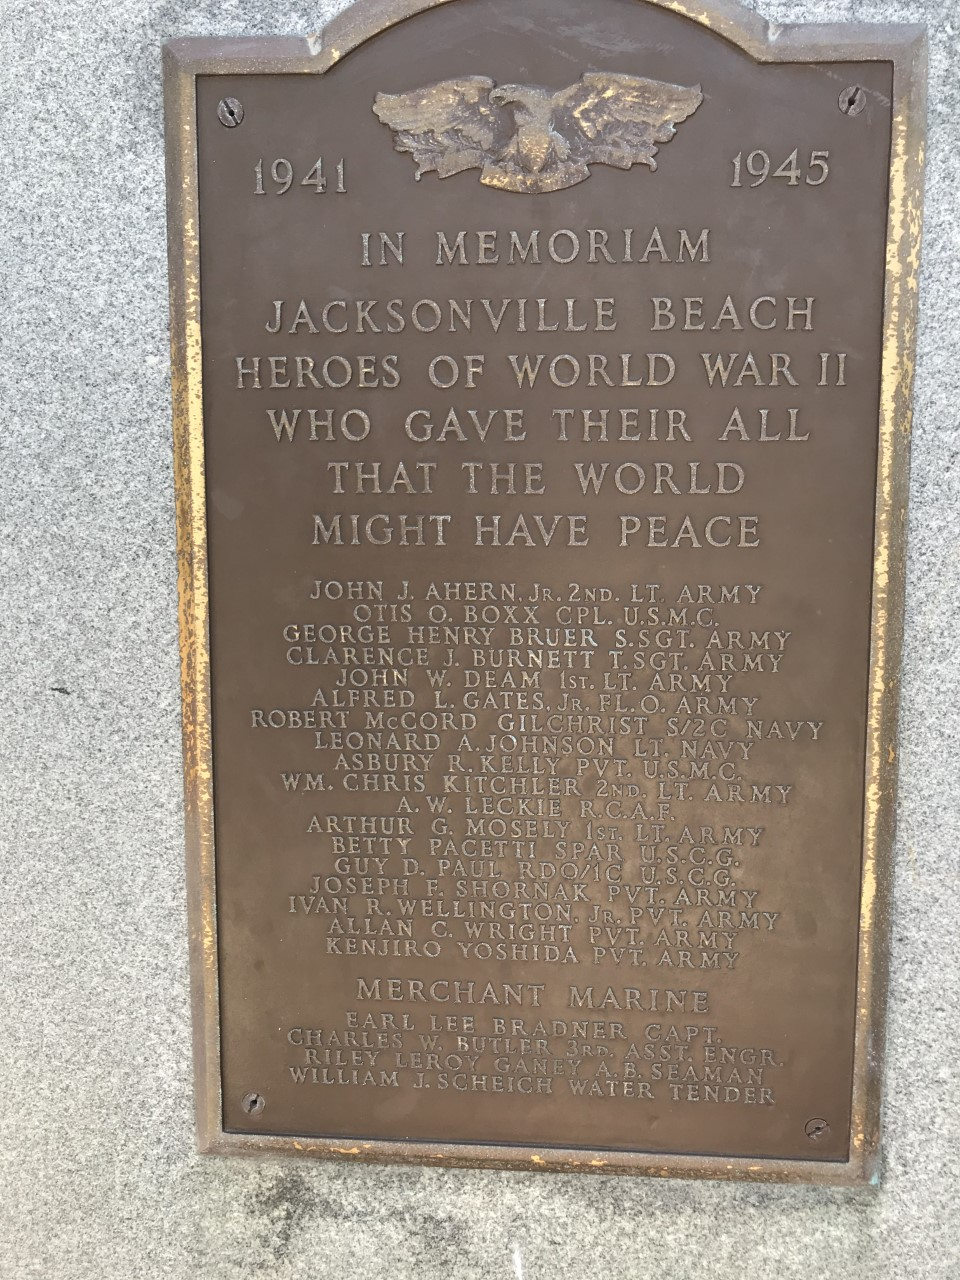 Jacksonville Beach Heroes of World War II at Beach Blvd. & 2nd. Ave N.